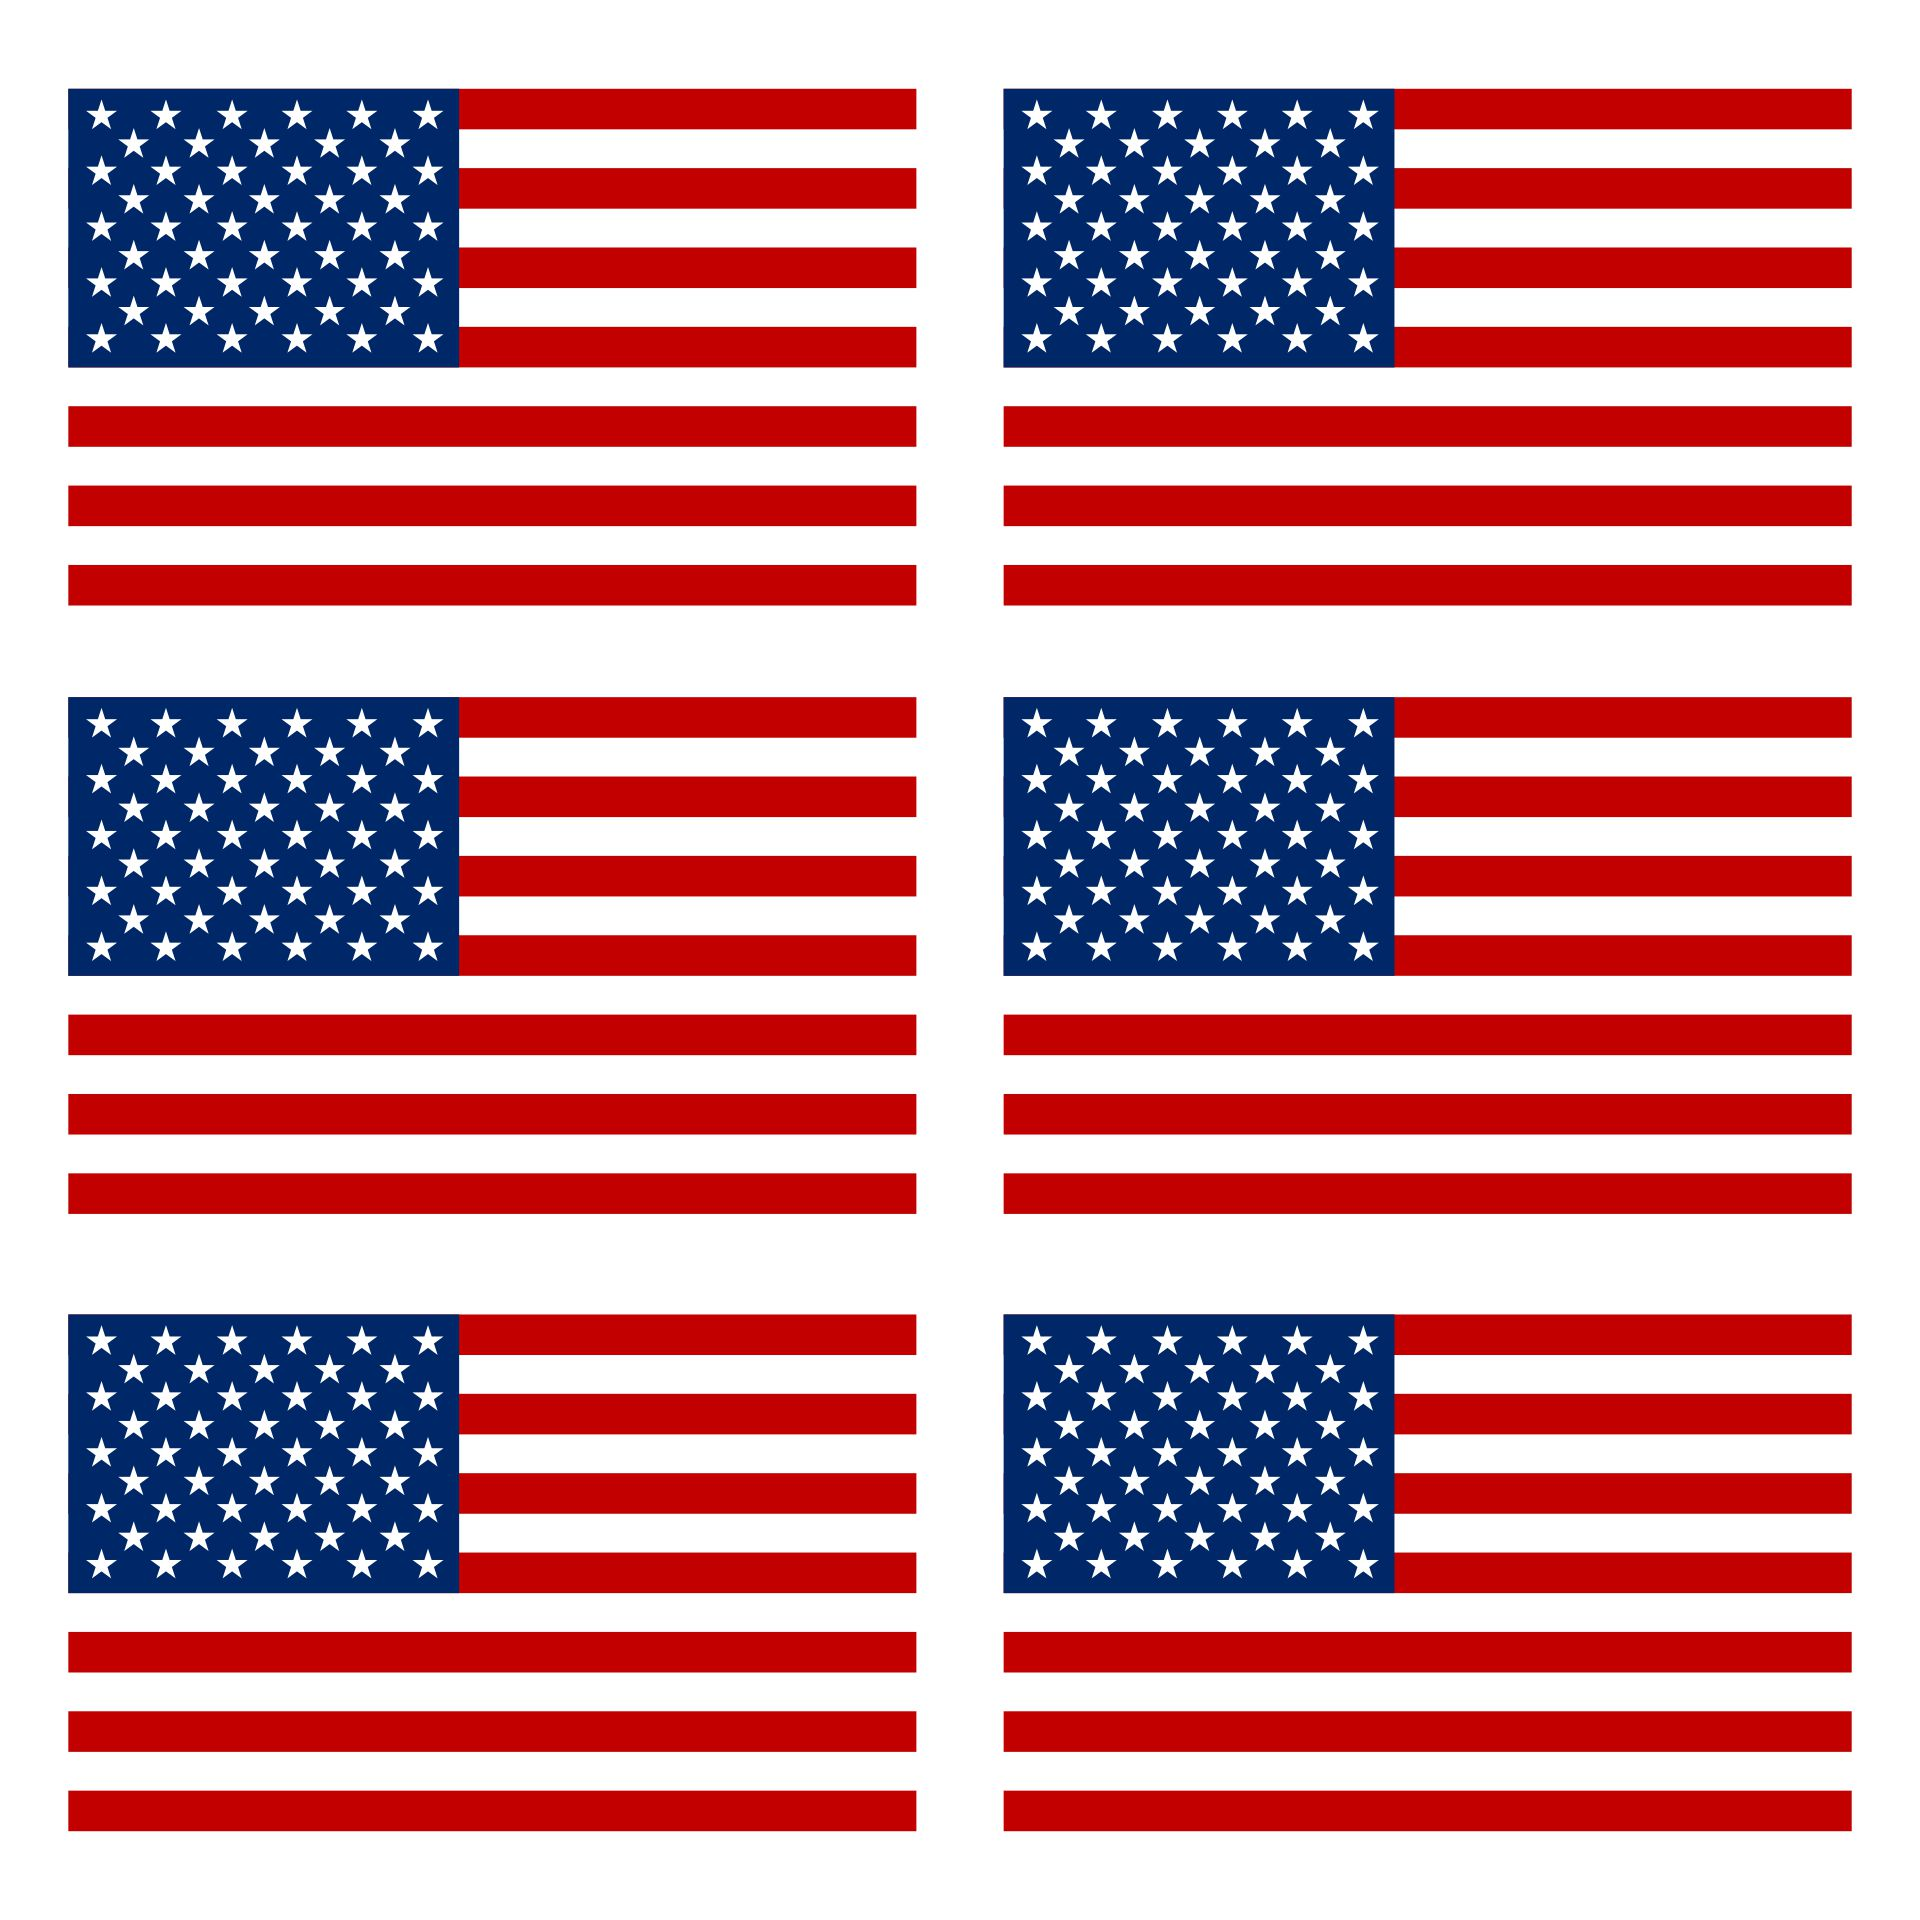 8 Best Images of Black And White American Flag Banner ...